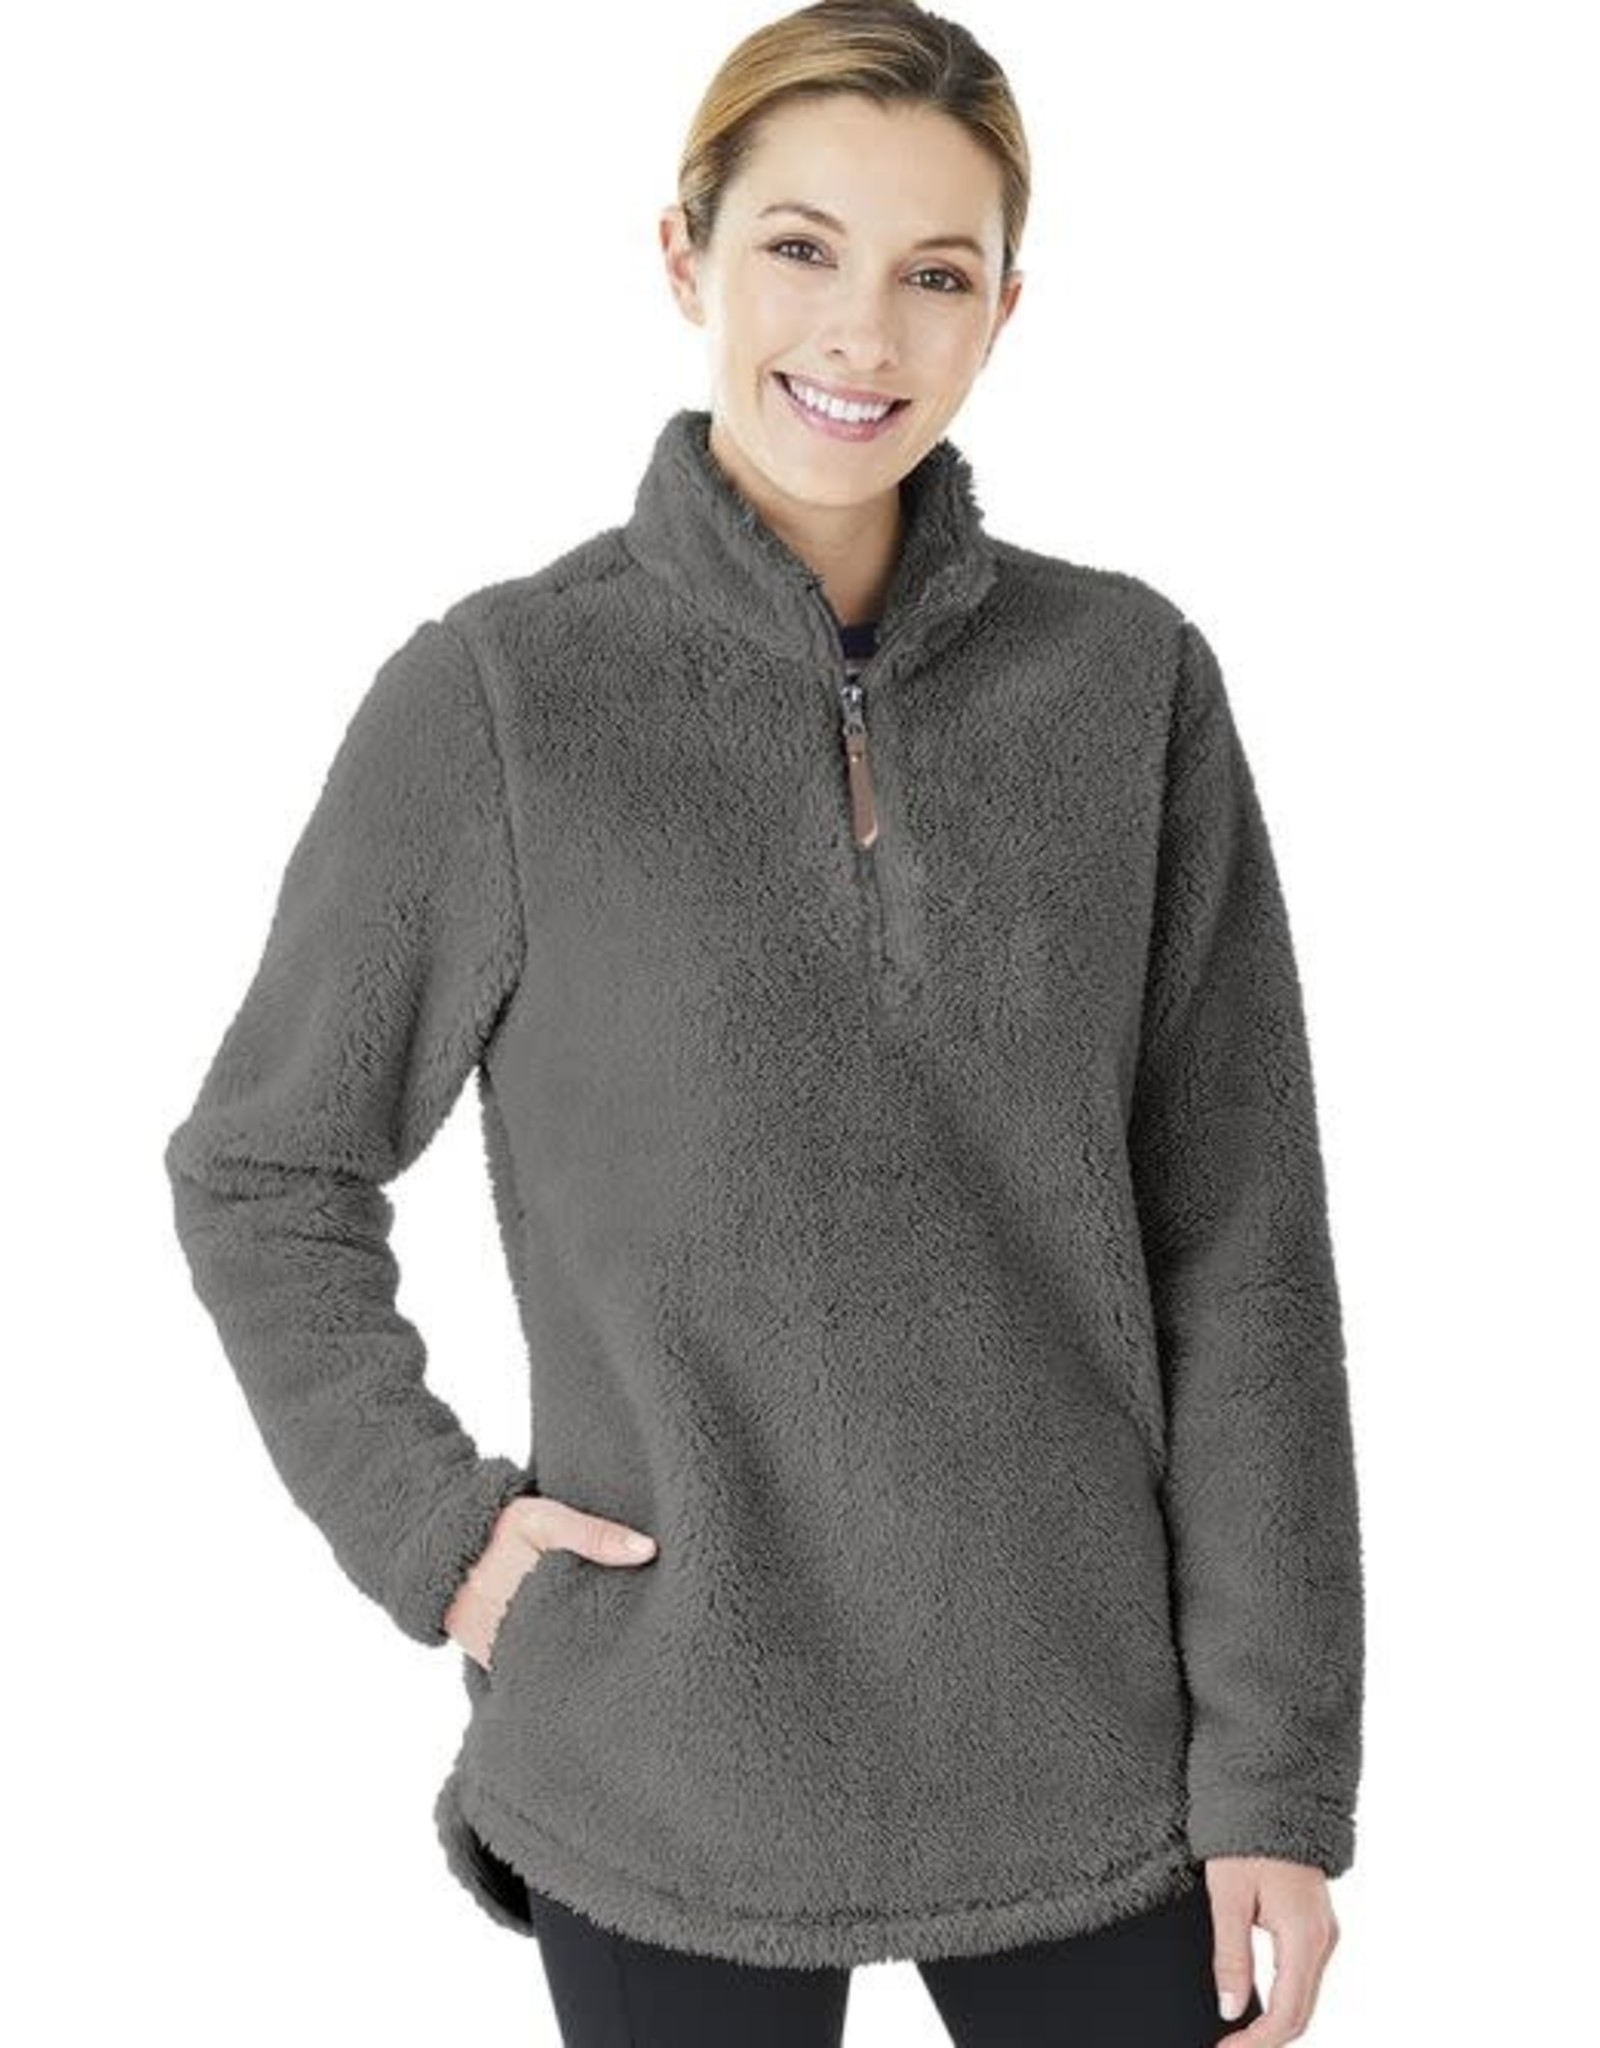 Charles River Apparel W's Newport Fleece Pullover Charcoal